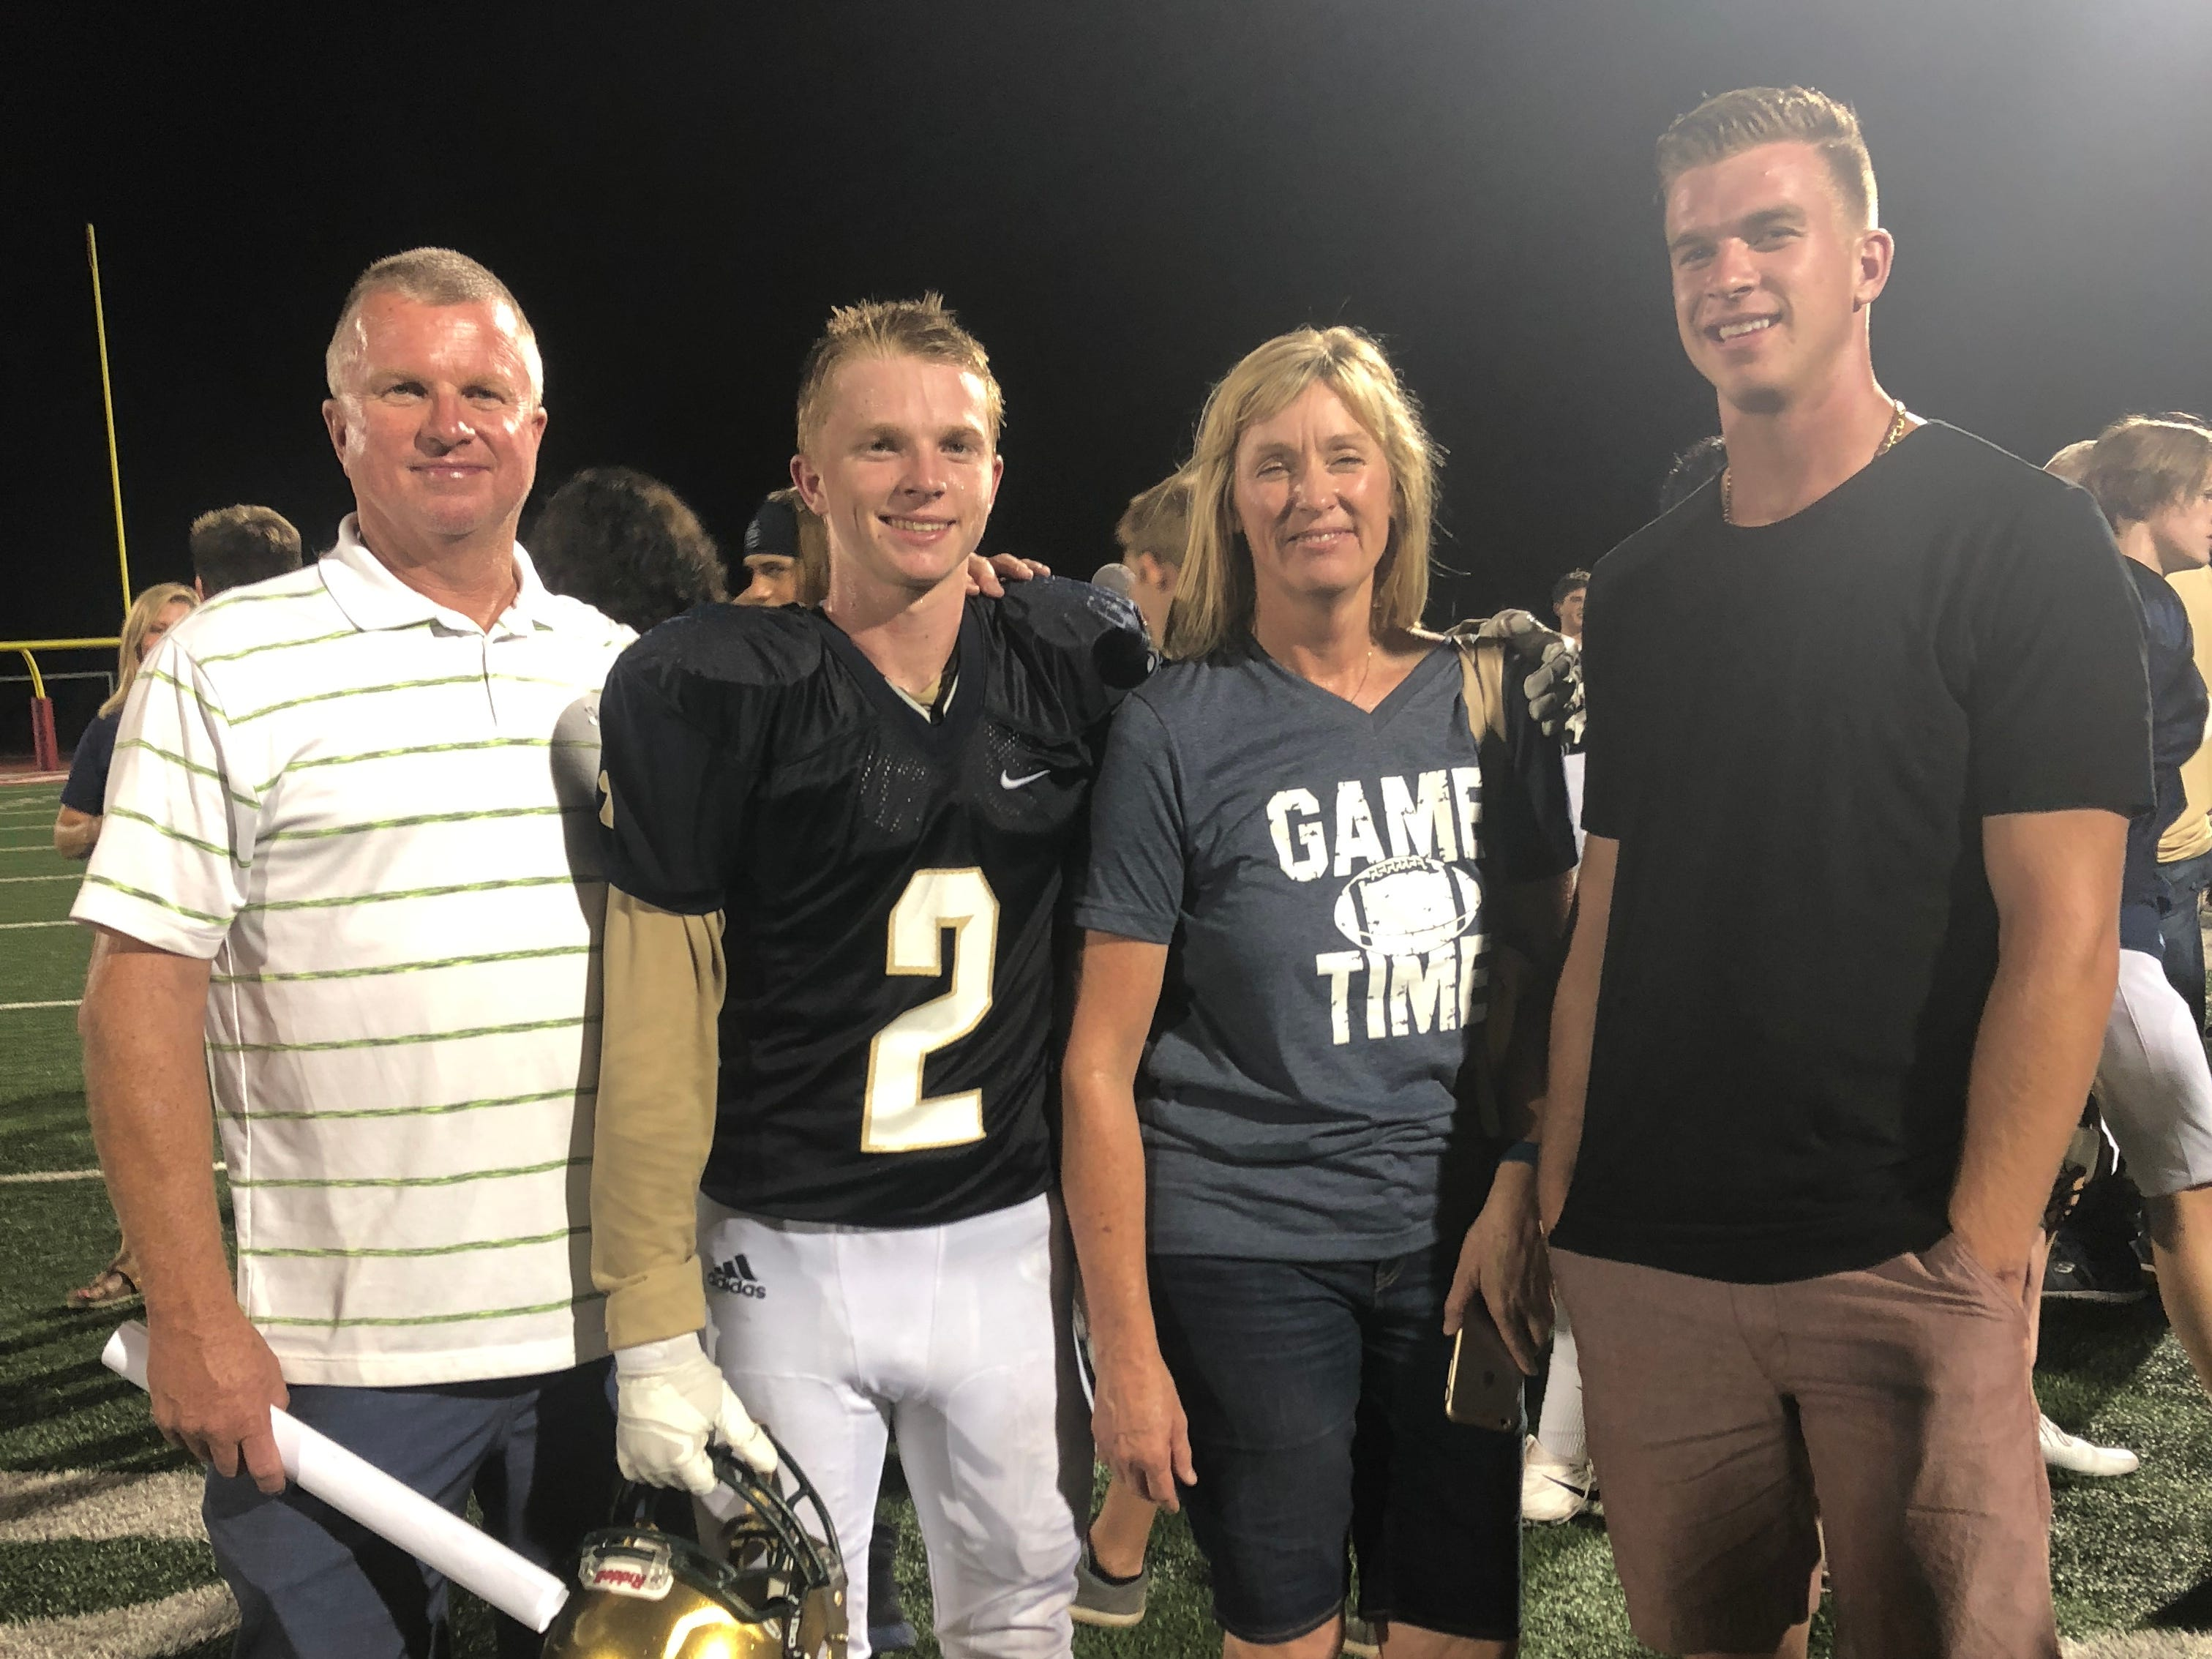 Carson Holyoak with family after scoring the winning touchdown for the Snow Canyon on a 100-yard interception in overtime to give the Warriors a 35-29 victory over Taylorsville